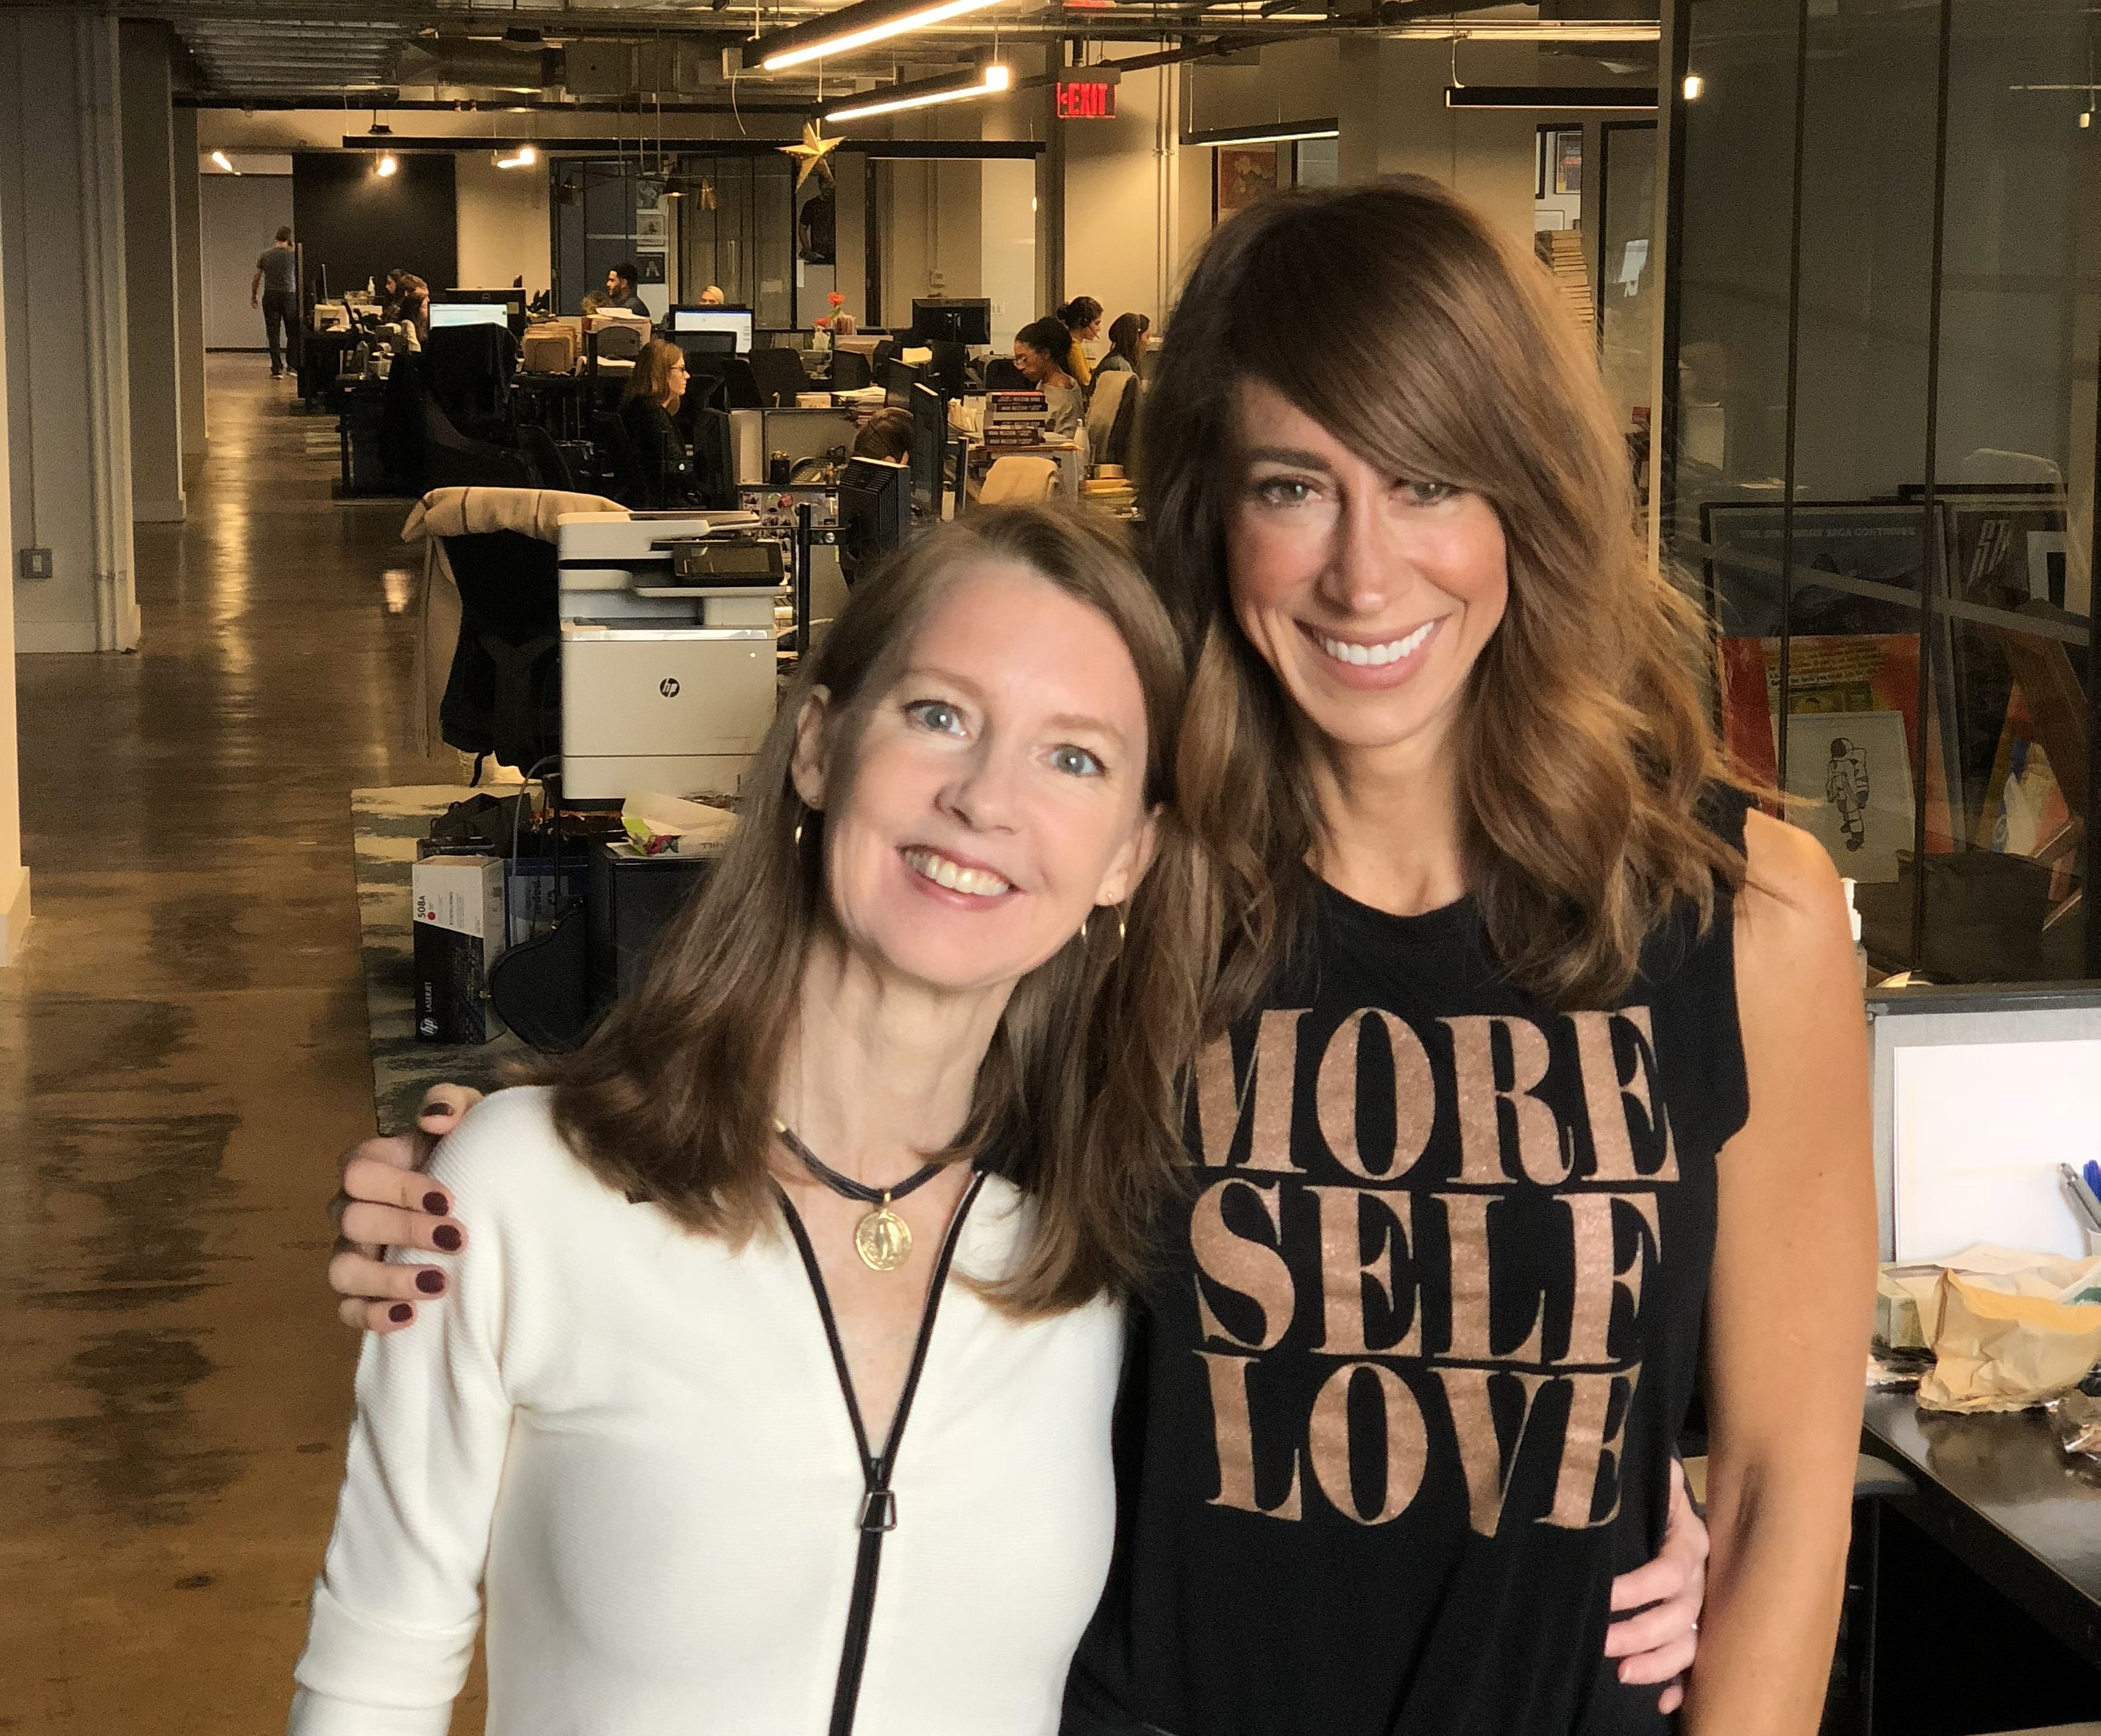 Podcast 219: Very Special Episode—Going Deep into Giving Up with Whole30's Melissa Hartwig Urban